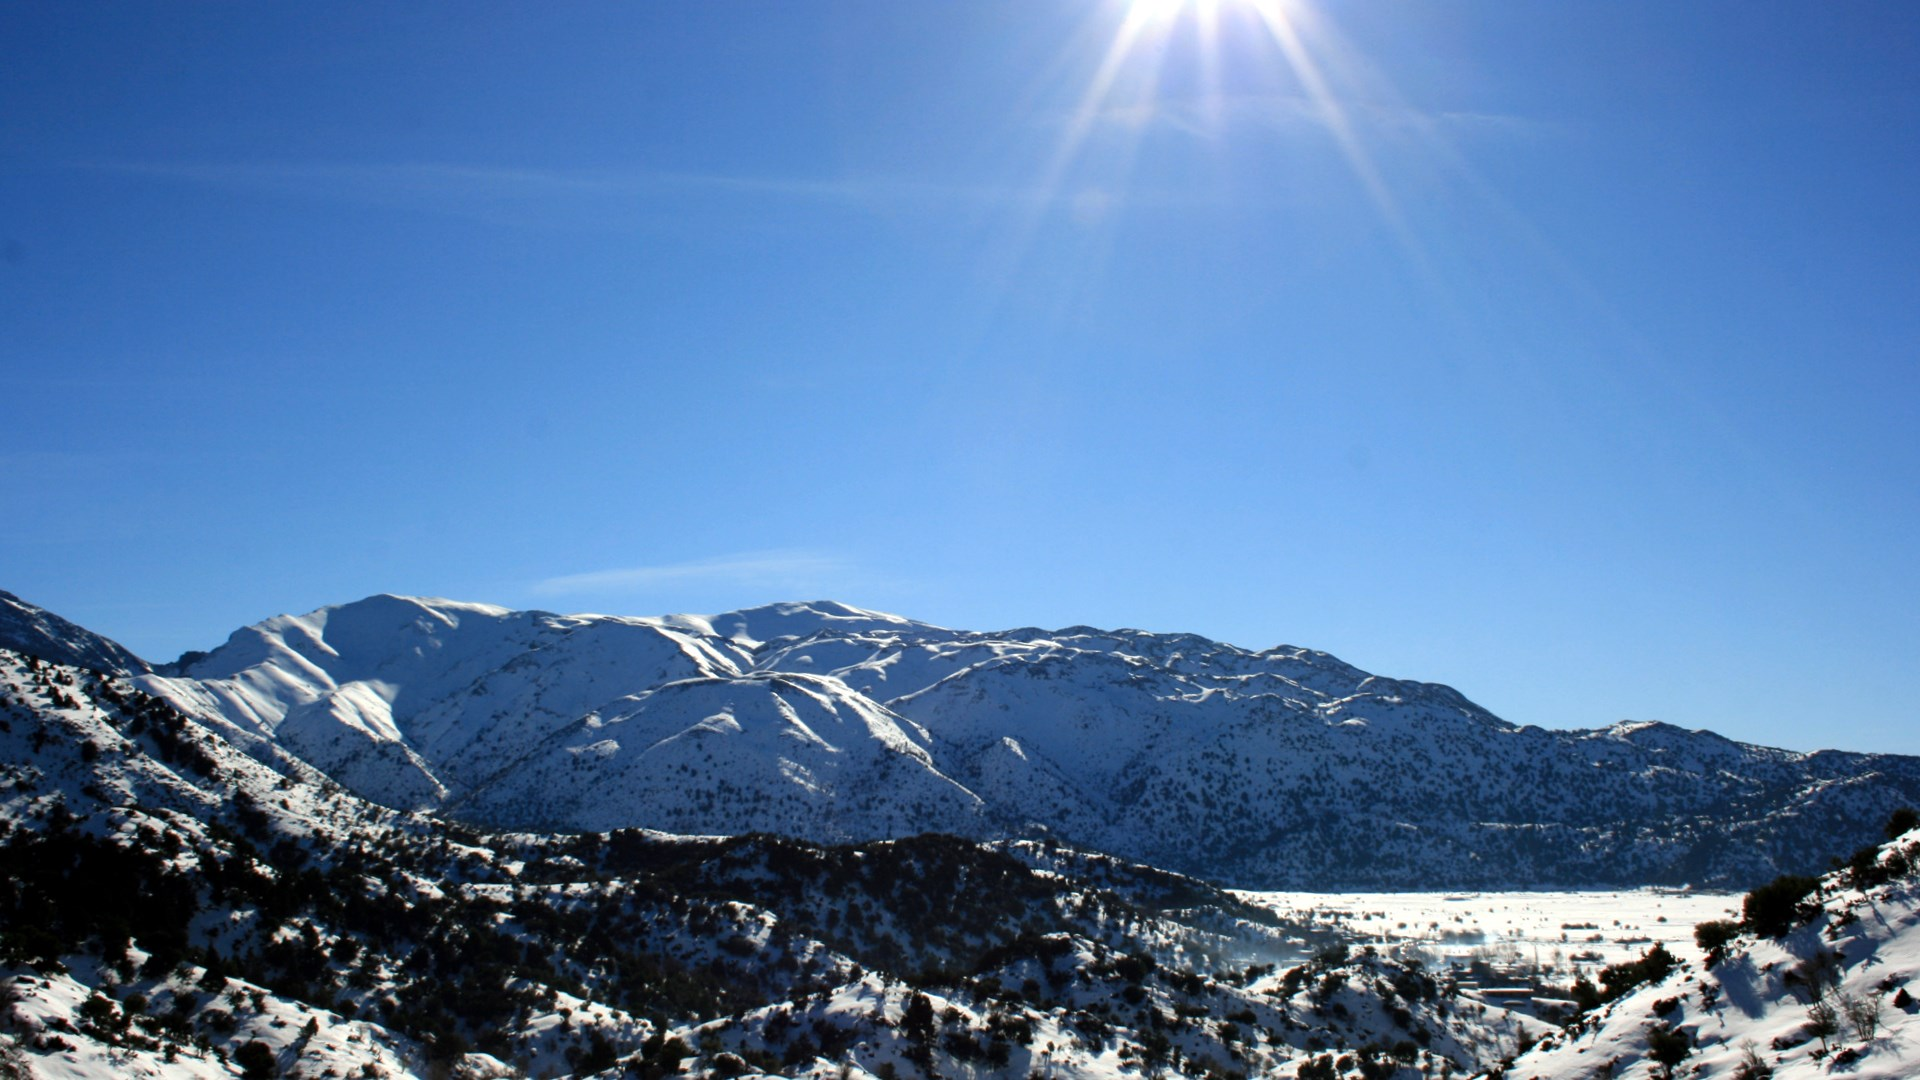 The White Mountains of Crete | 11 Jan 2015  | Alargo